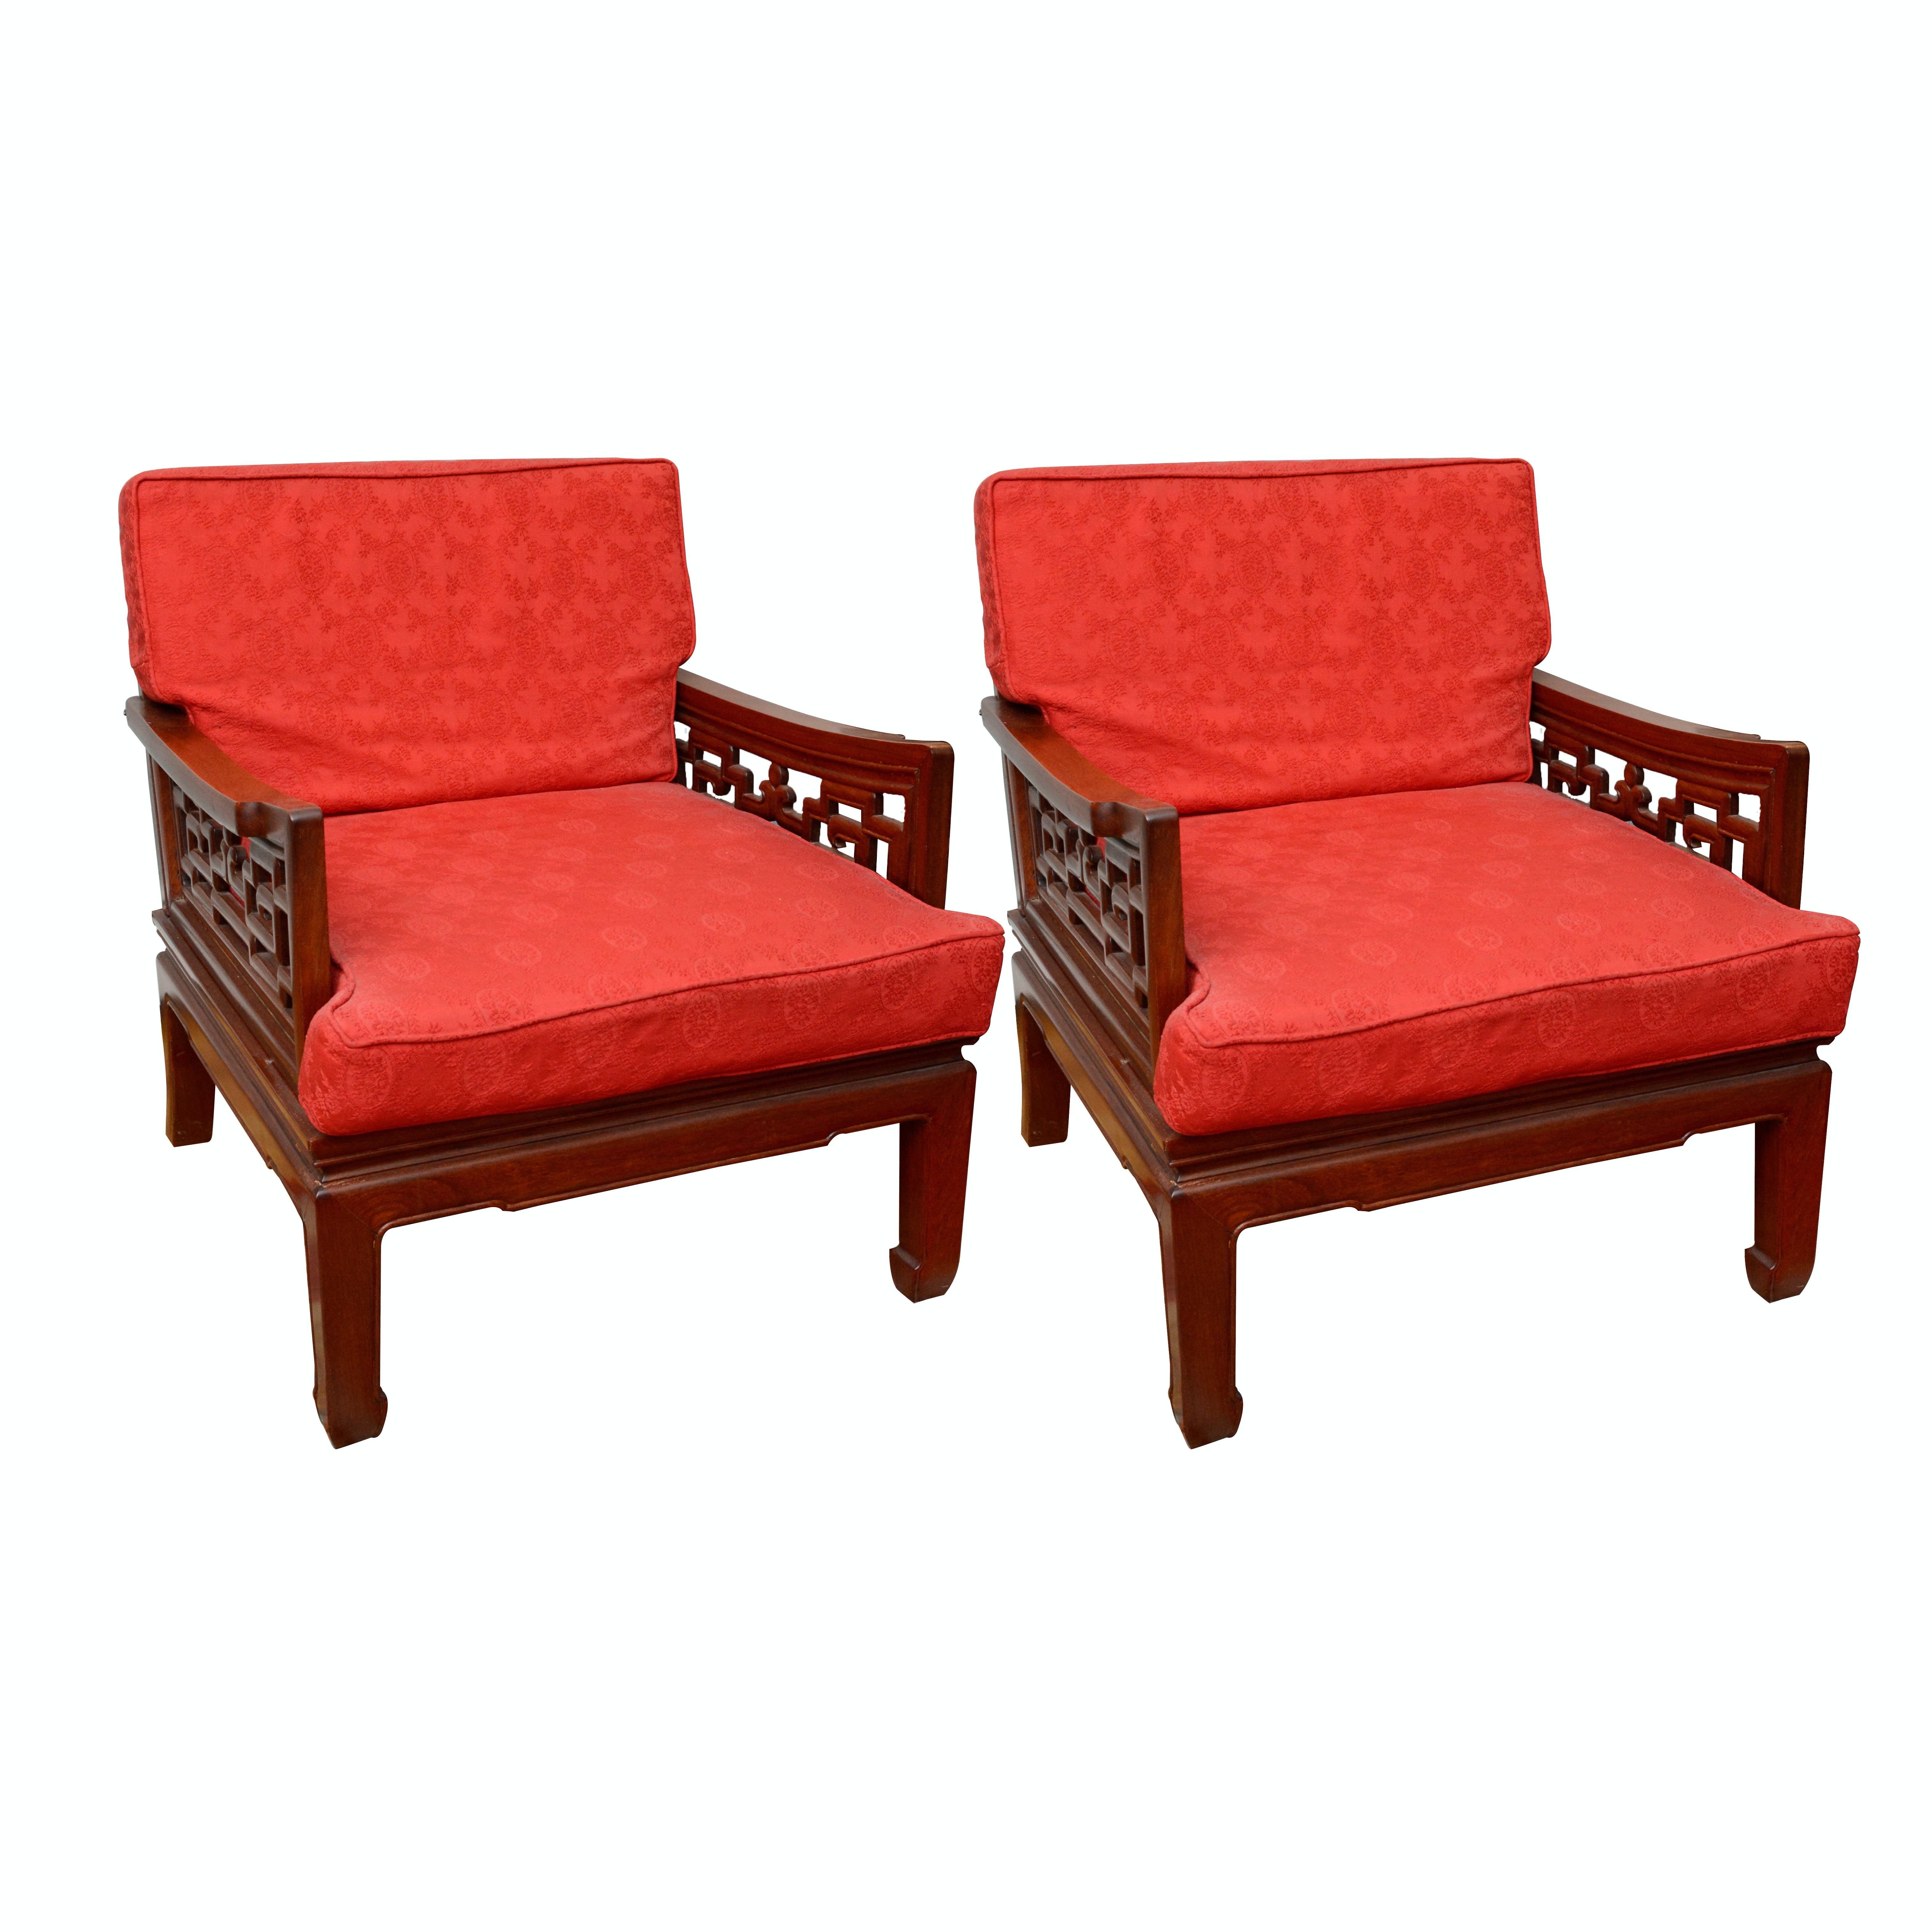 Vintage Chinese Inspired Armchairs